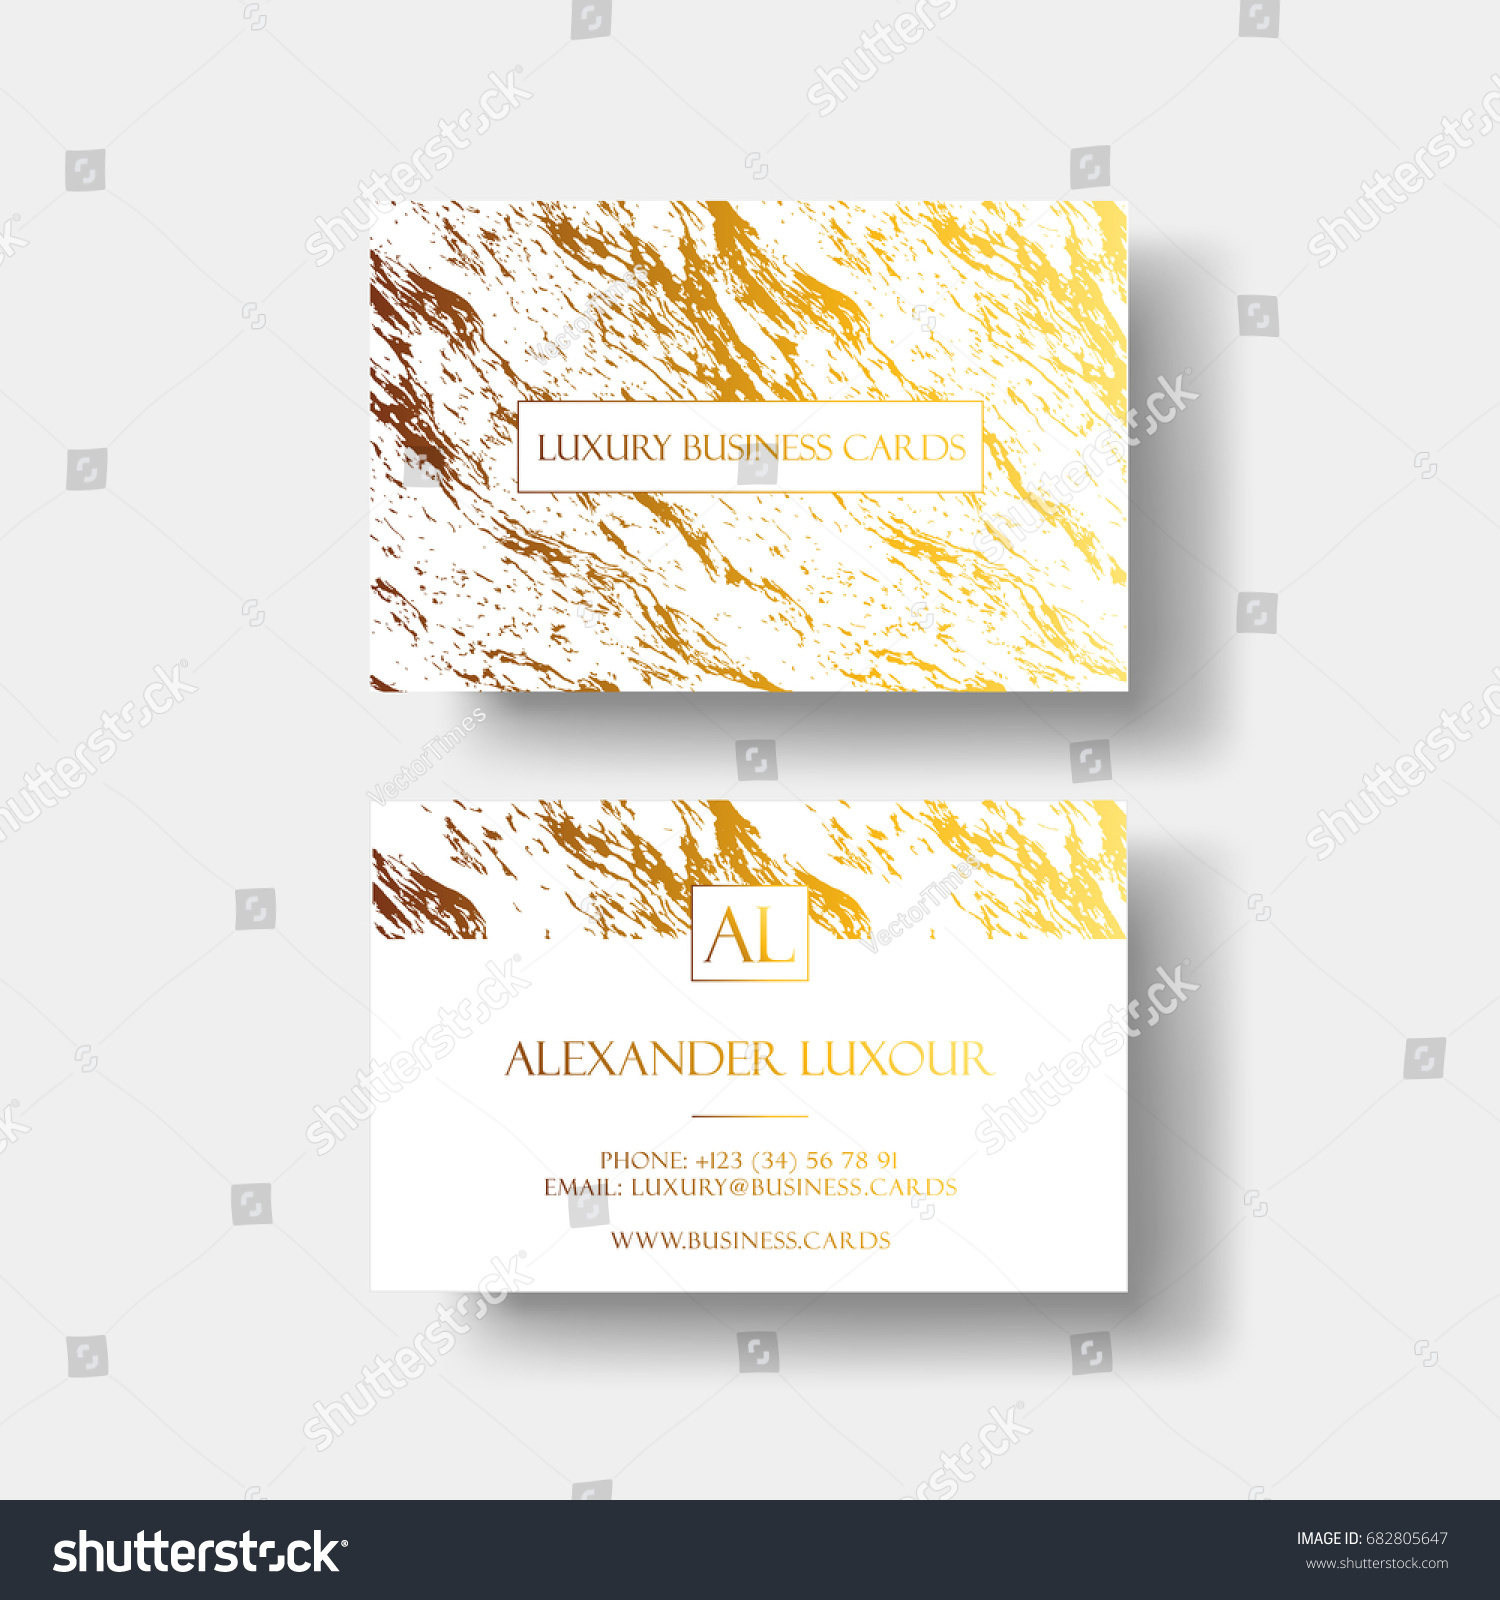 Cool gartner studios business card template gallery business card business card templates gartner studios image collections card fbccfo Gallery